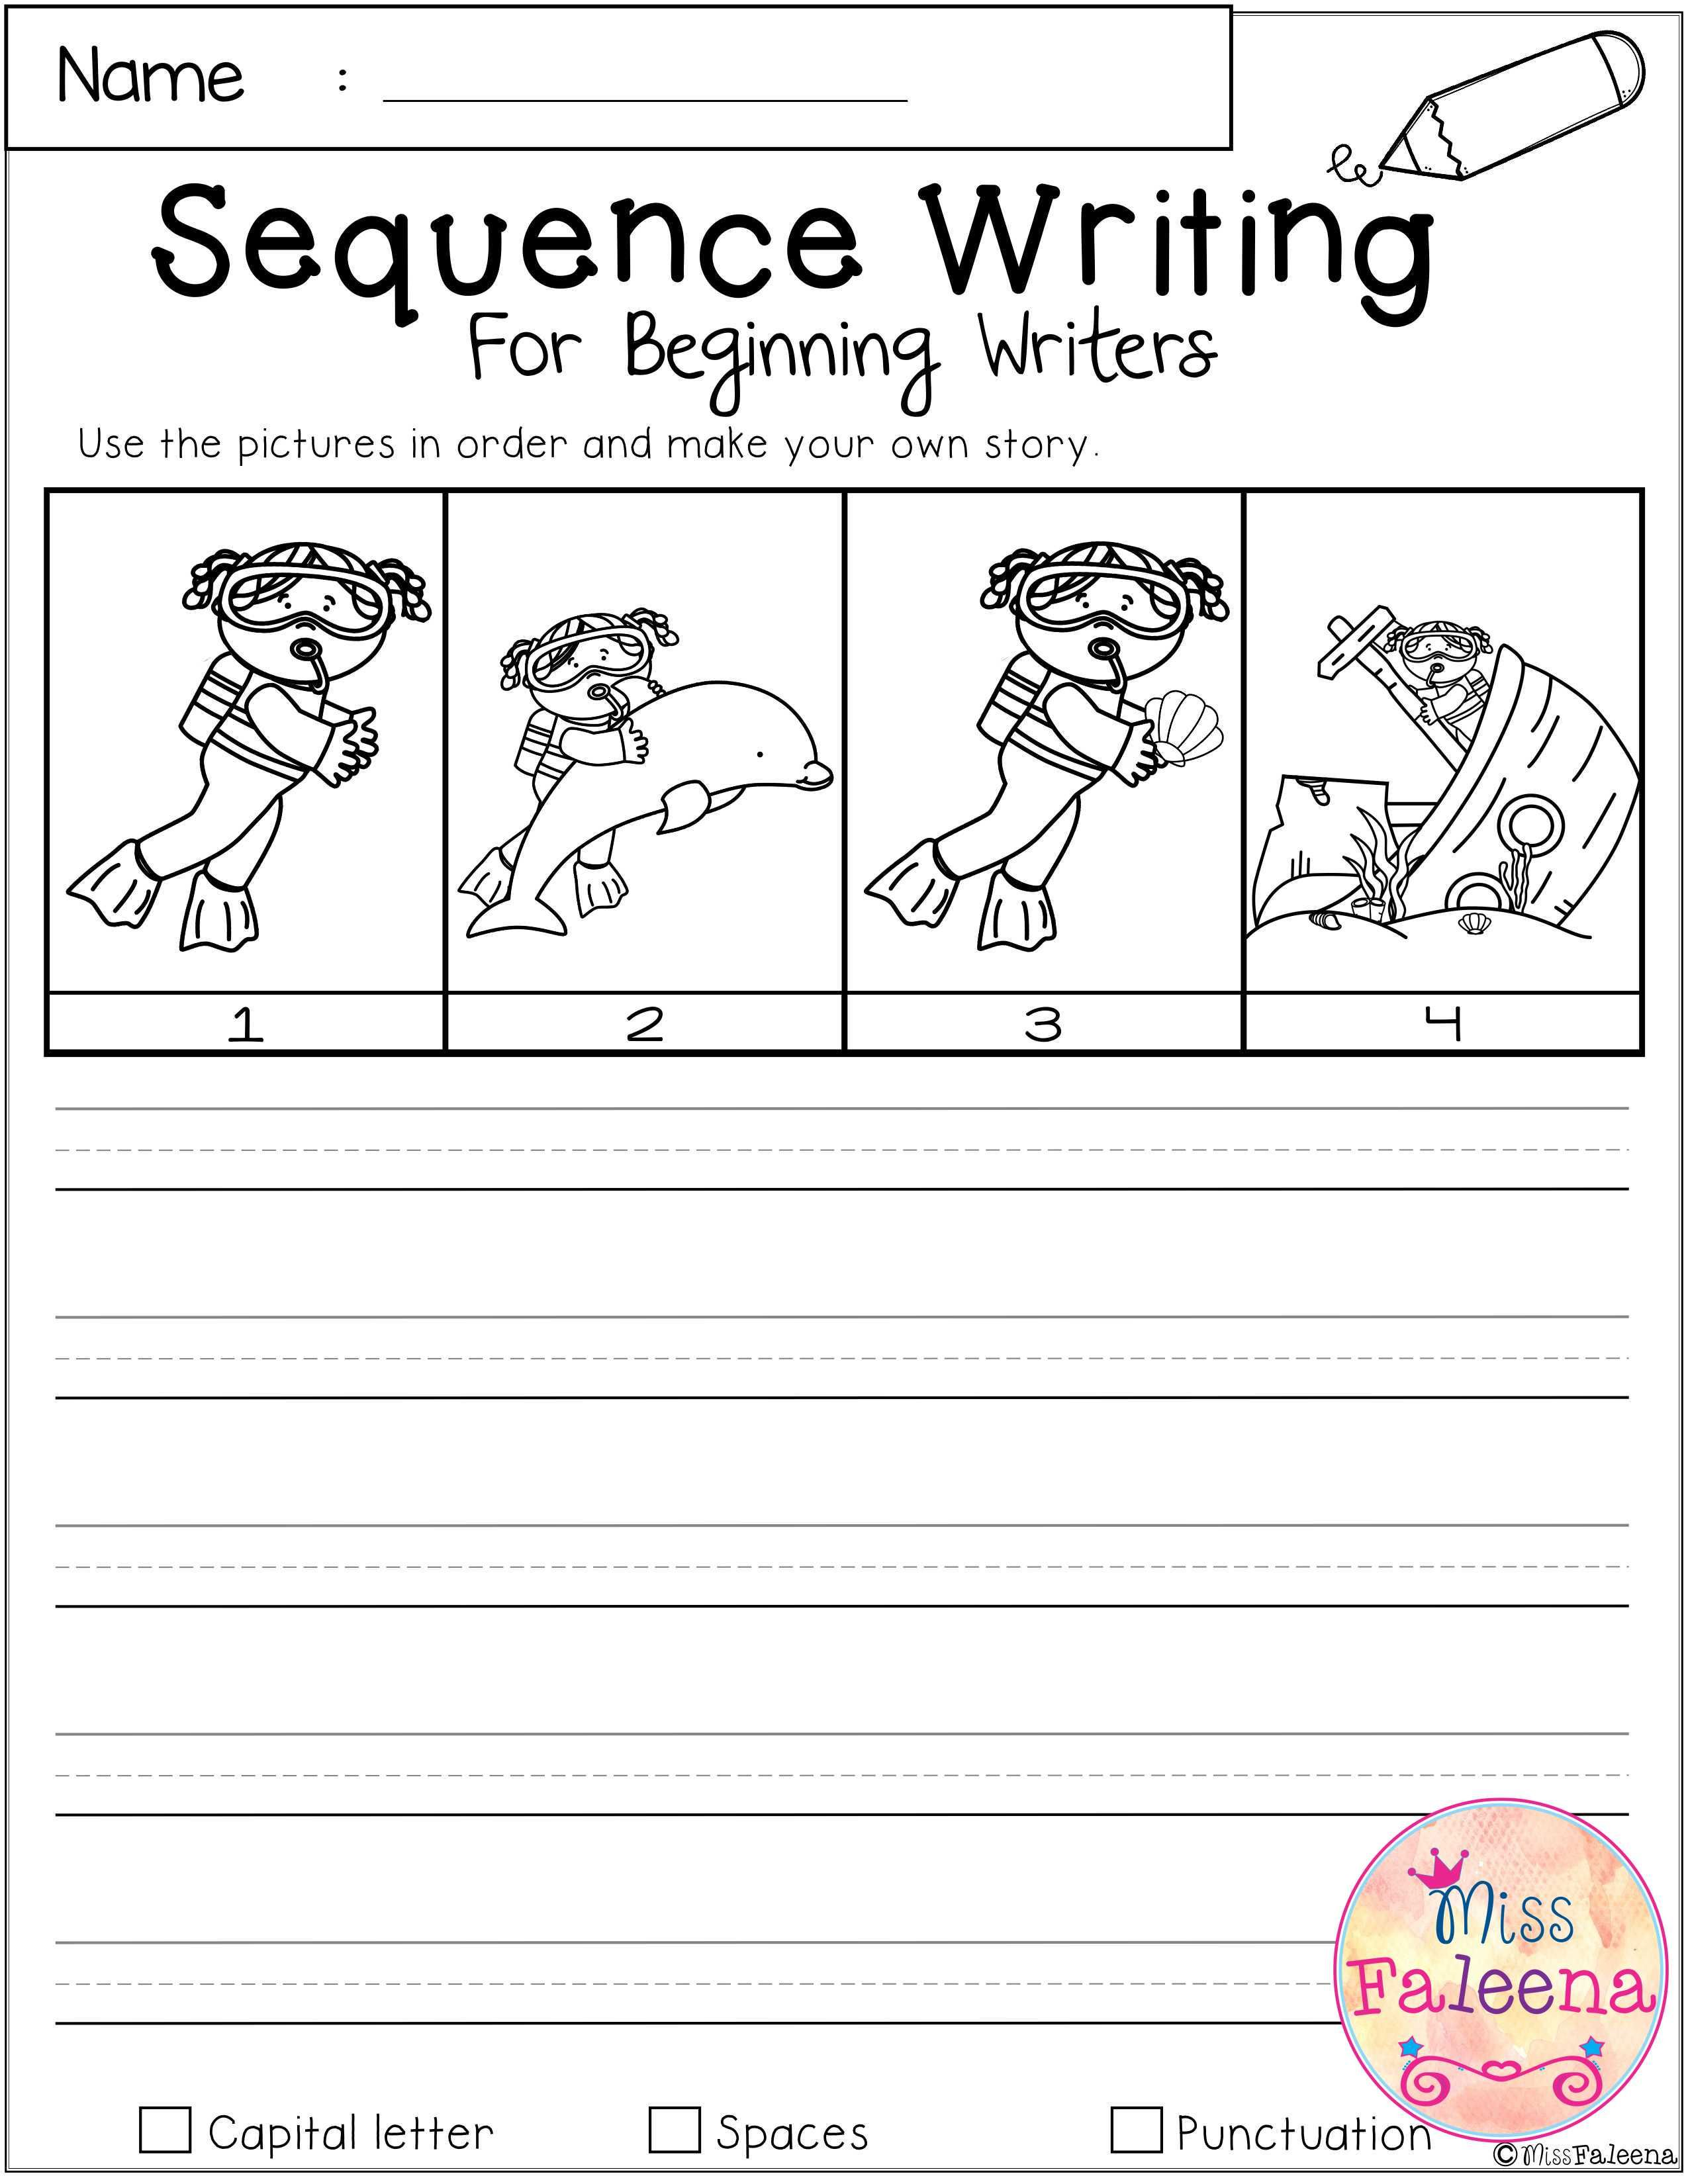 August Sequence Writing For Beginning Writers With Images